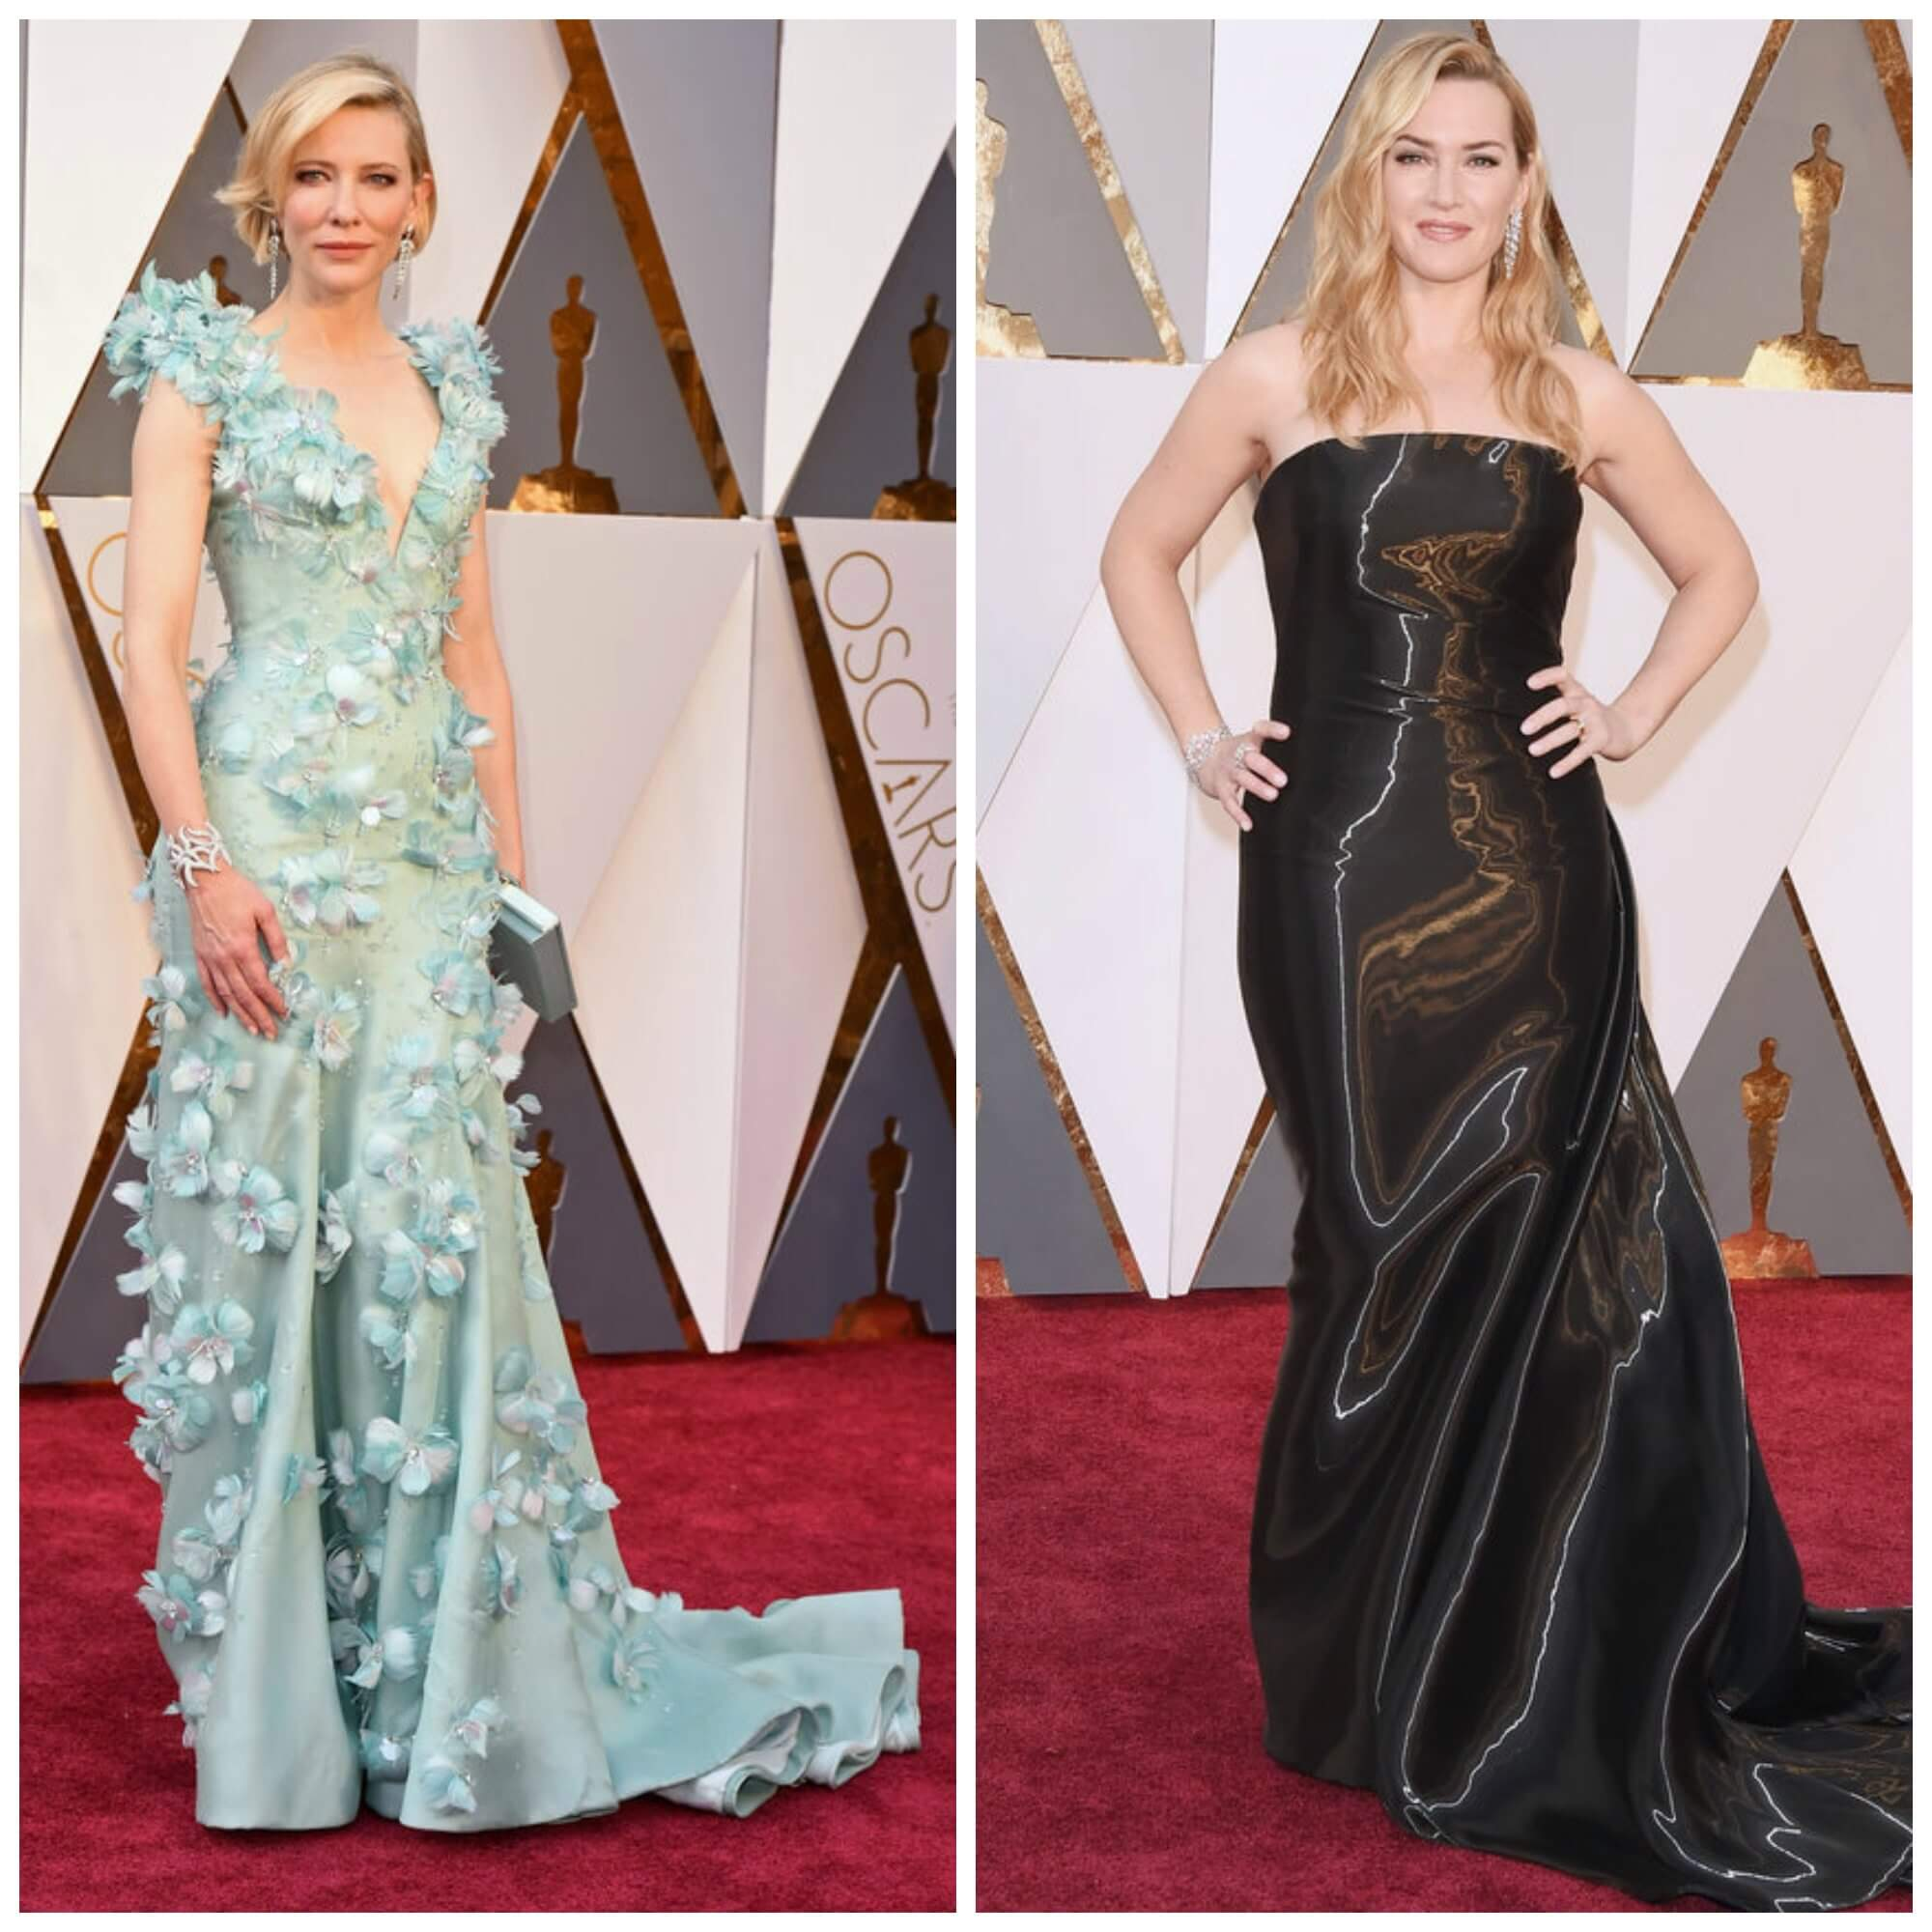 Kate, Cate